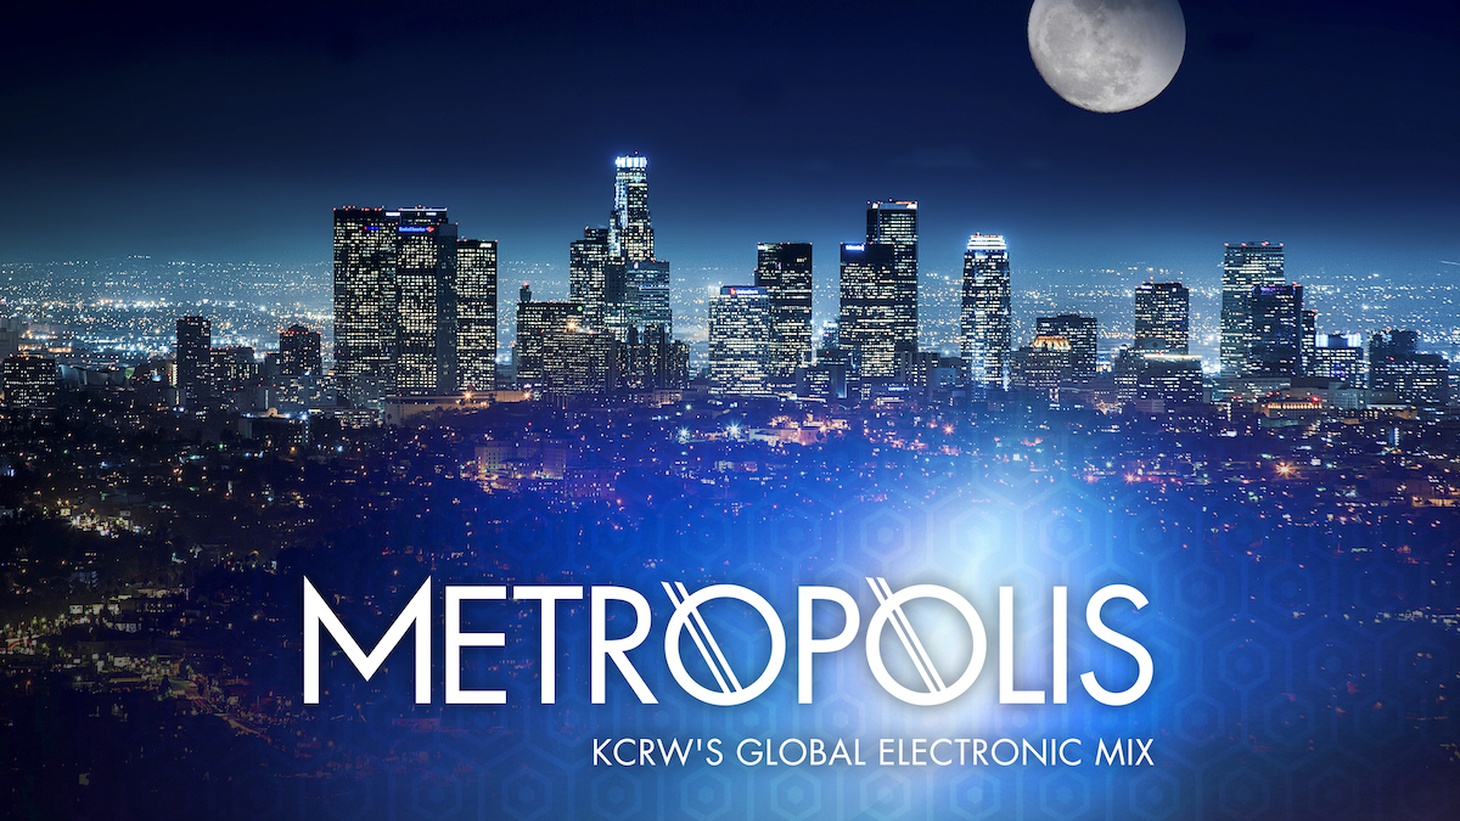 Renowned DJ, remixer, and producer Paul Oakenfold shares some music and thoughts in Metropolis.